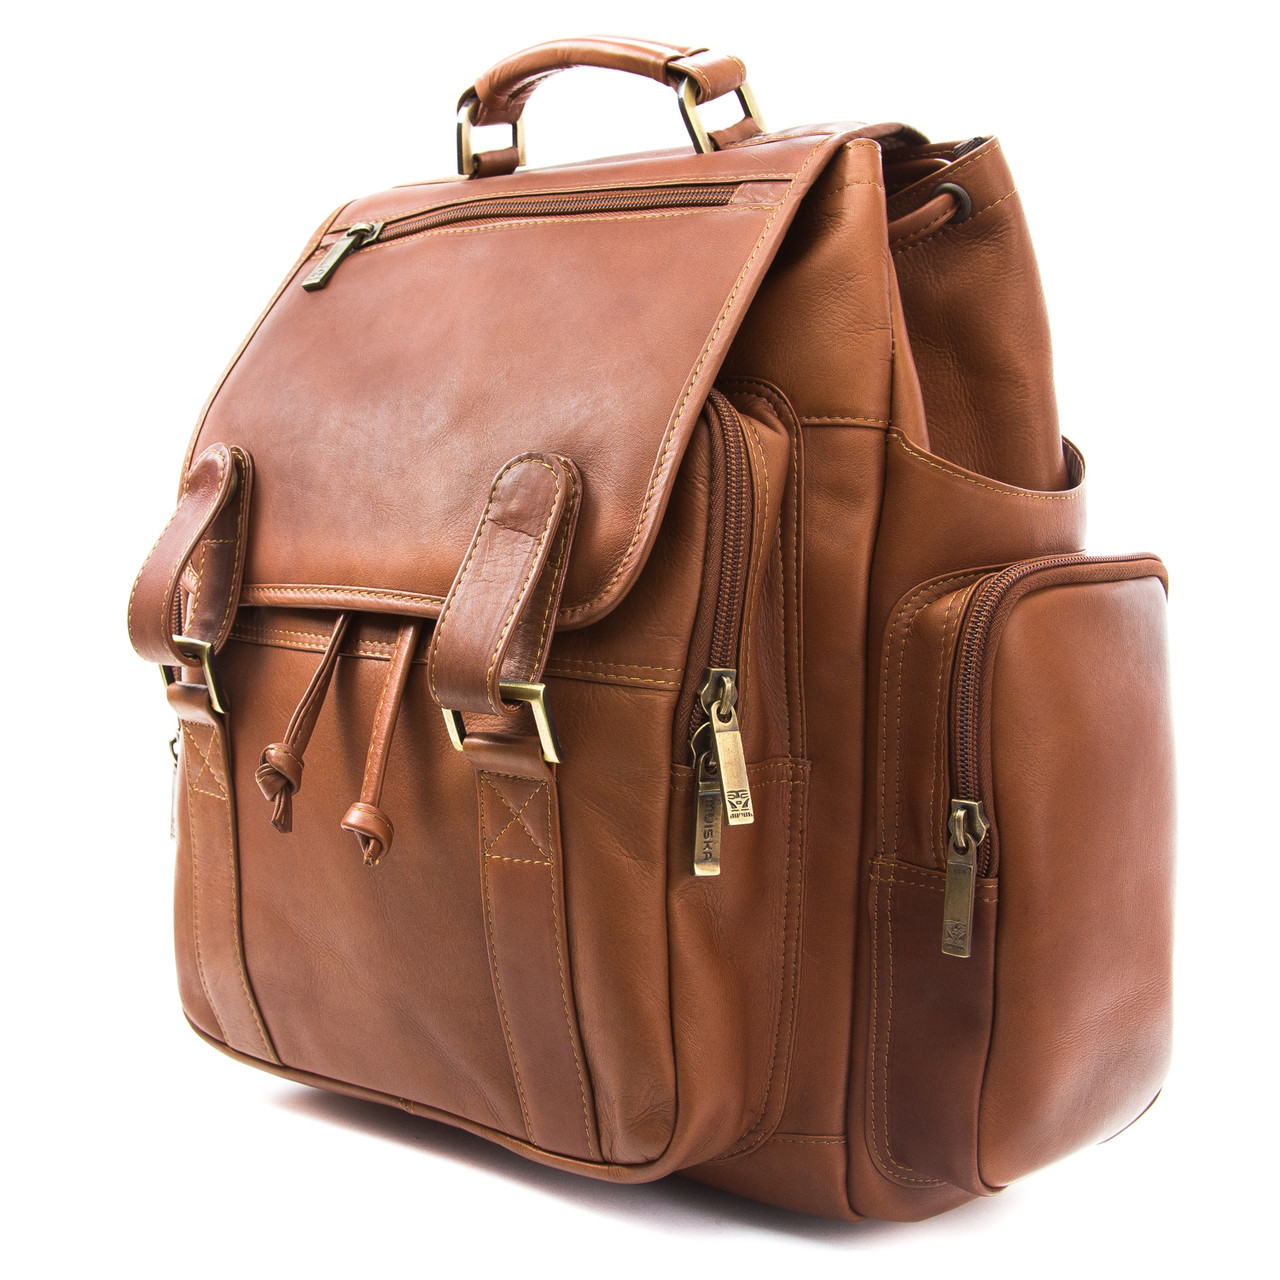 Muiska - Brooklyn - Leather Laptop Backpack is perfect for business or pleasure